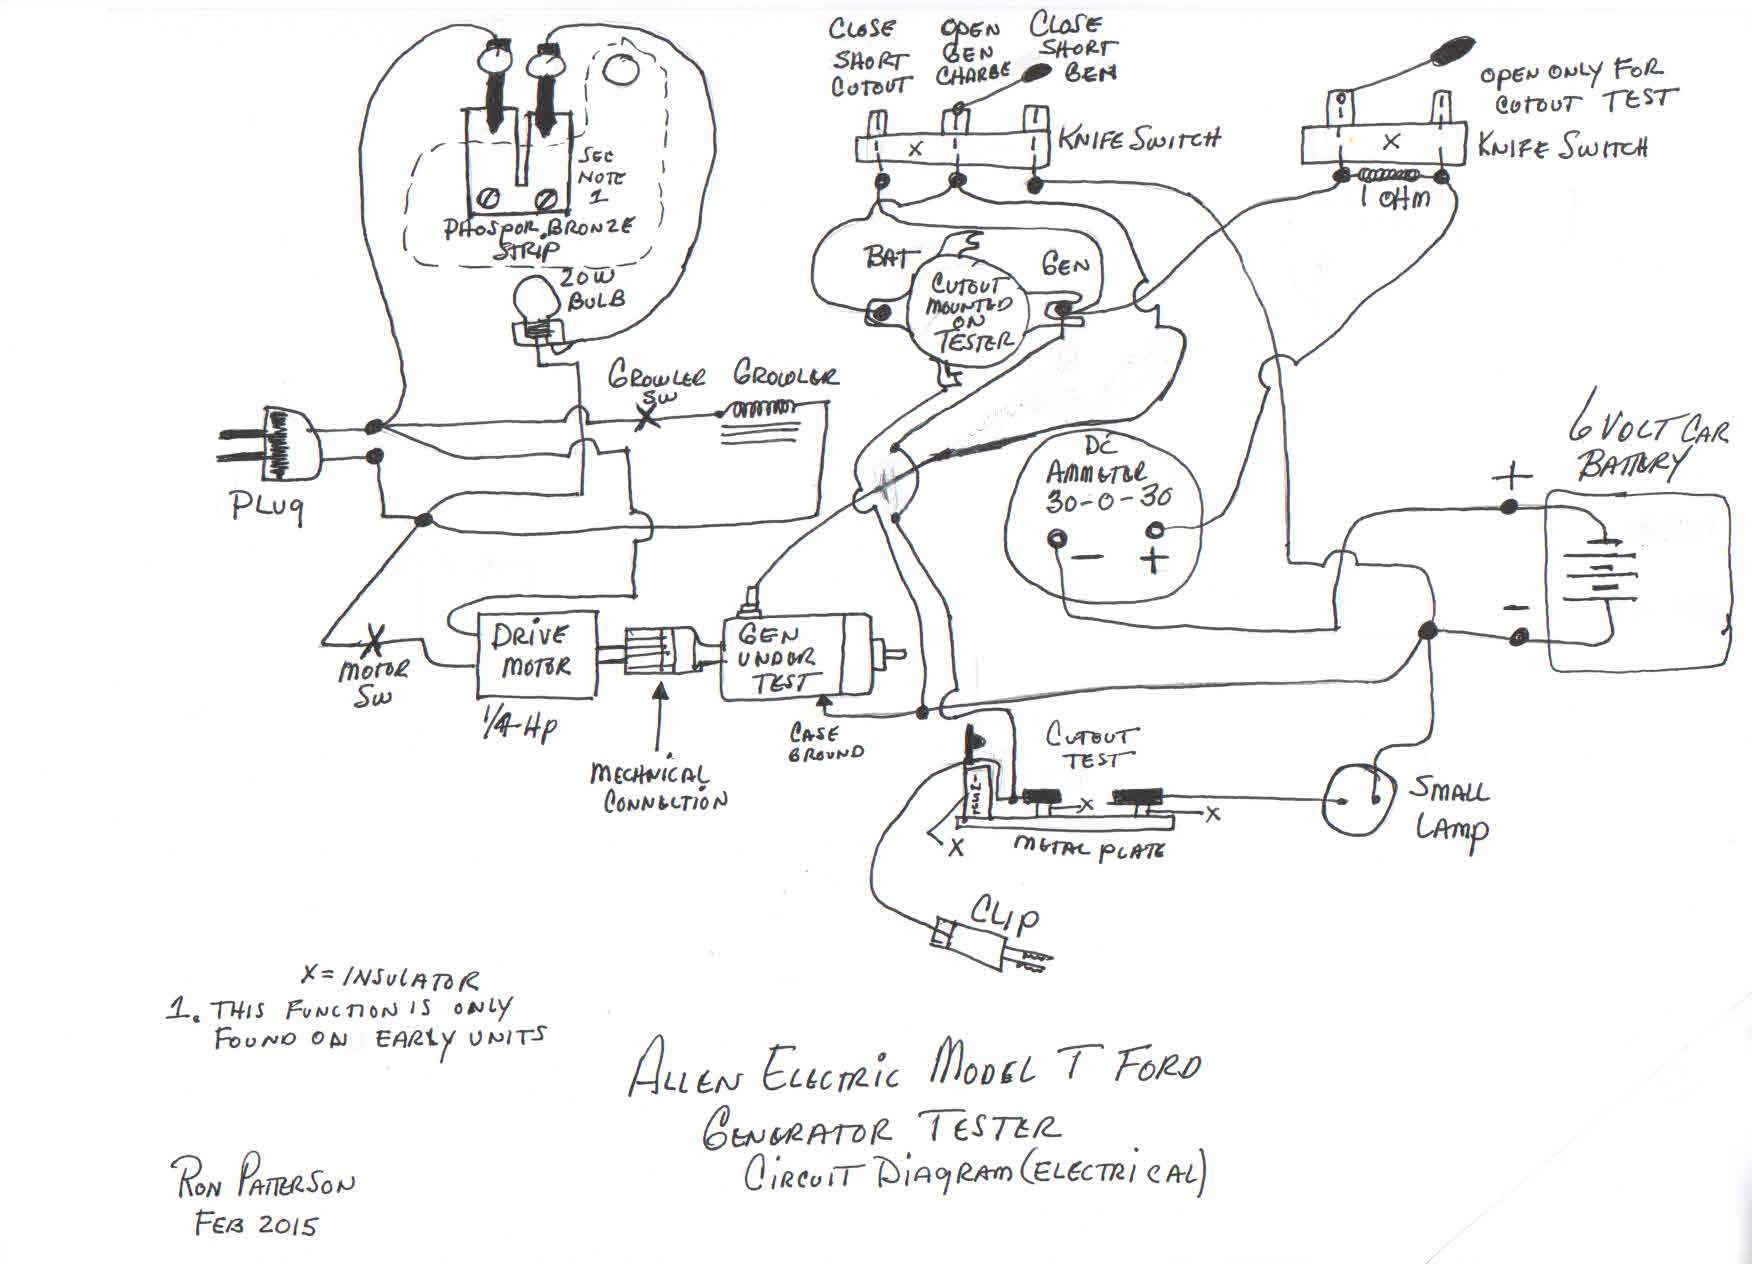 Model T Ford Forum: Allen Electric Generator Tester Wiring